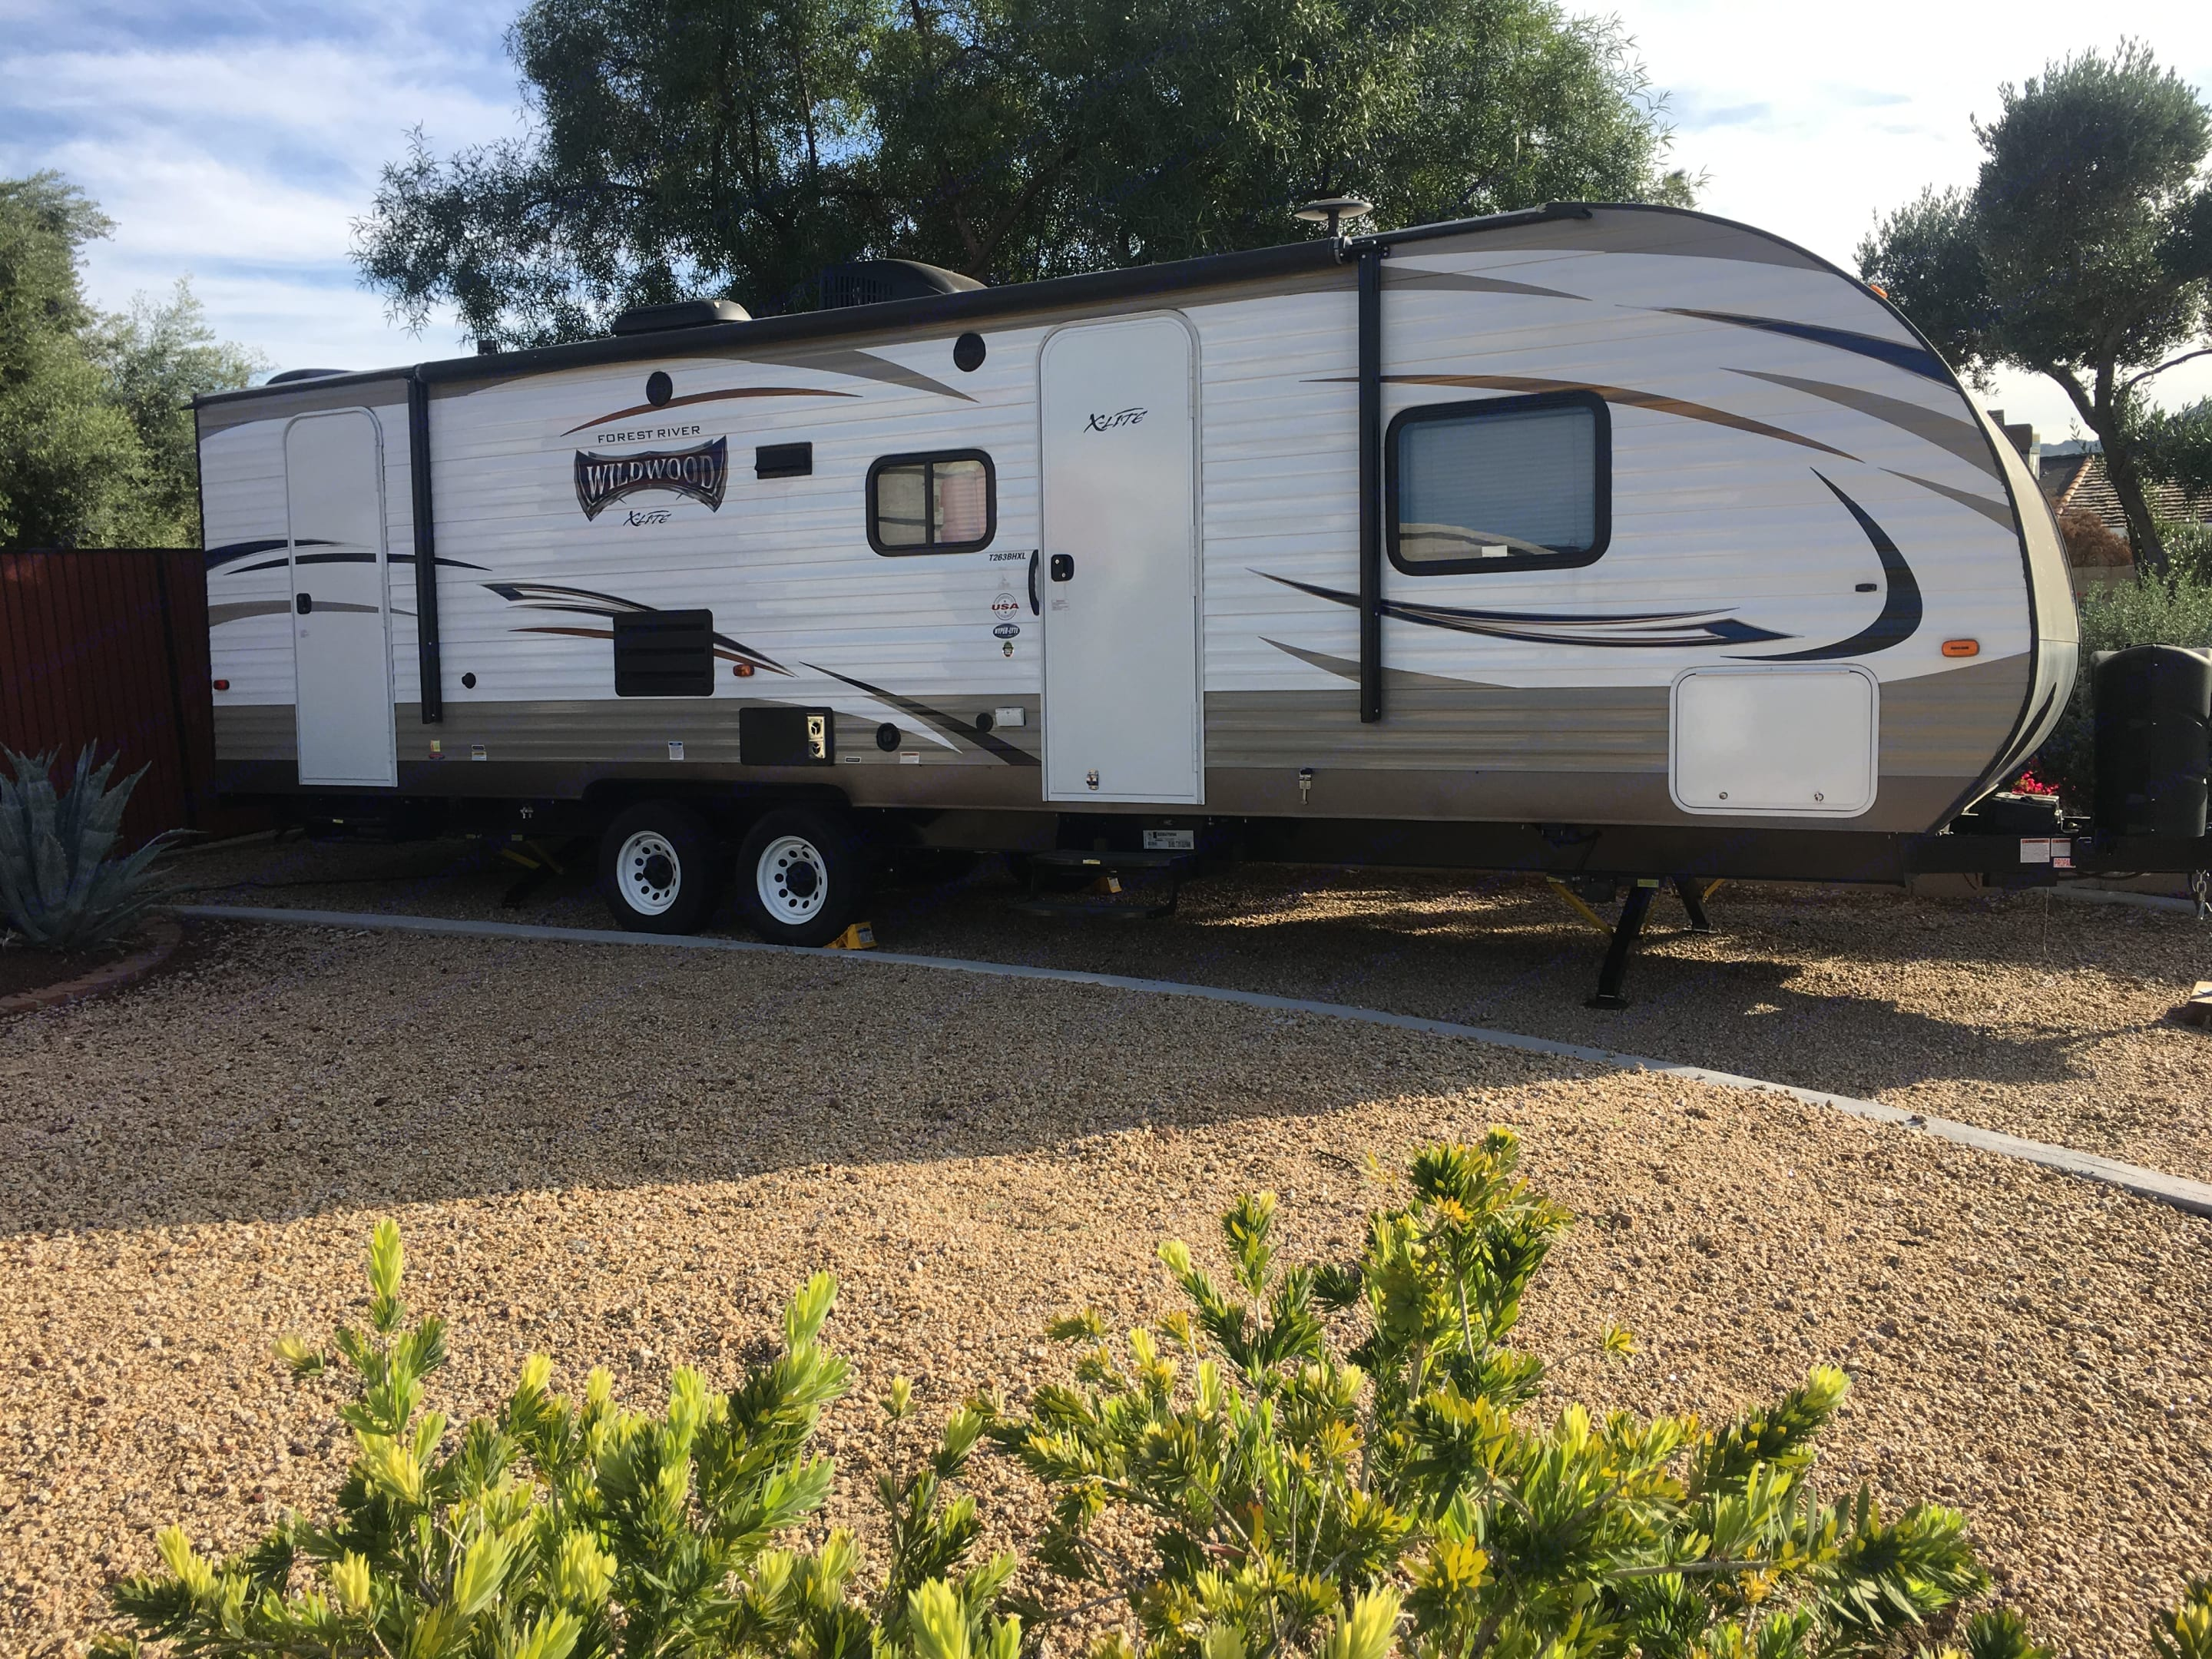 This unit is like new, been out 3 times. Full equipped!. Forrest River Wildwood 263BHXL 2018